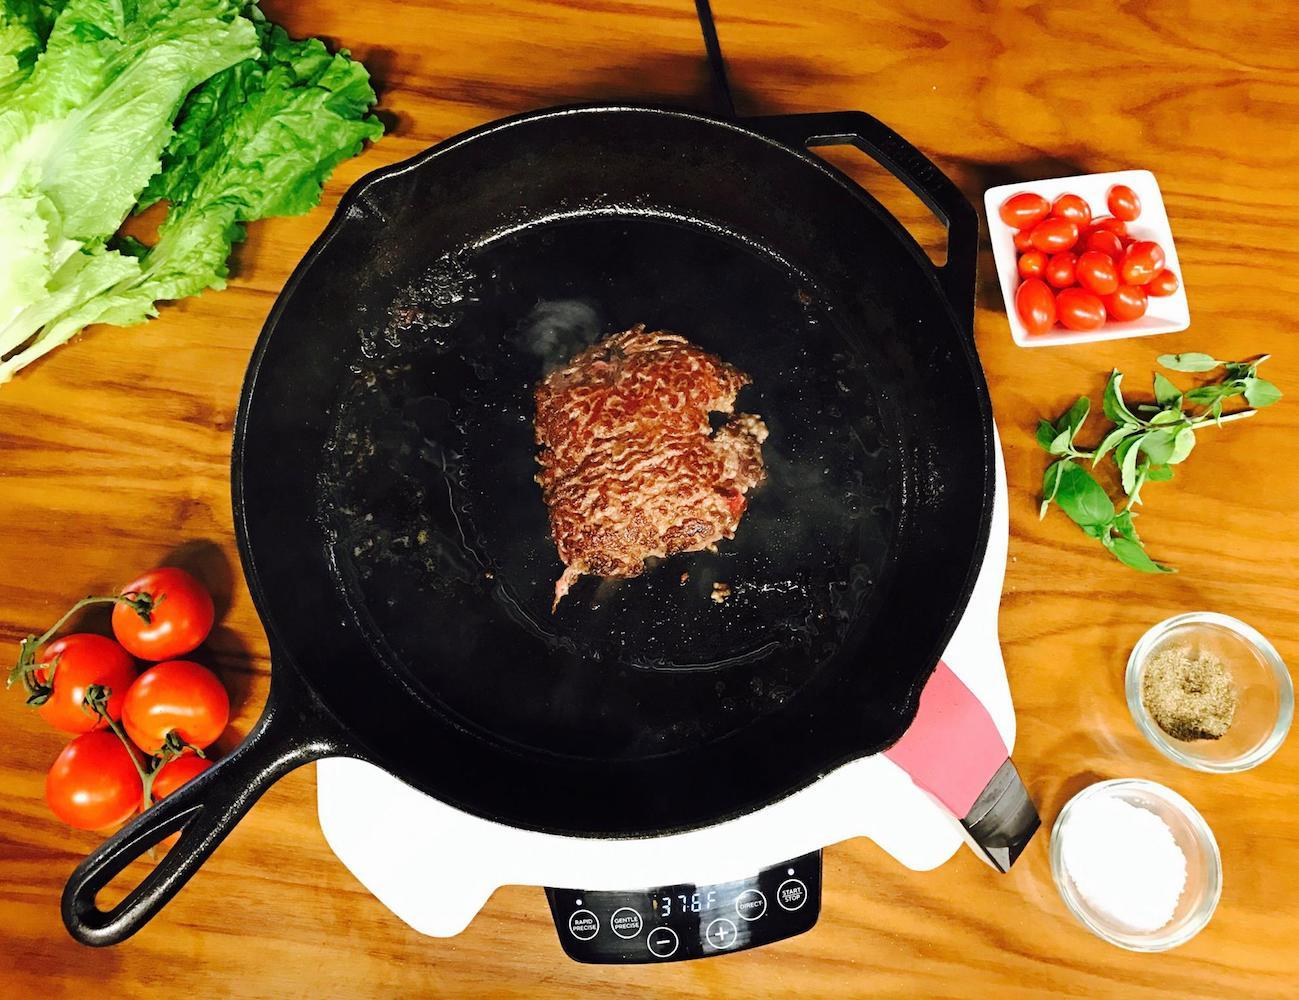 Paragon Smart Cooking System